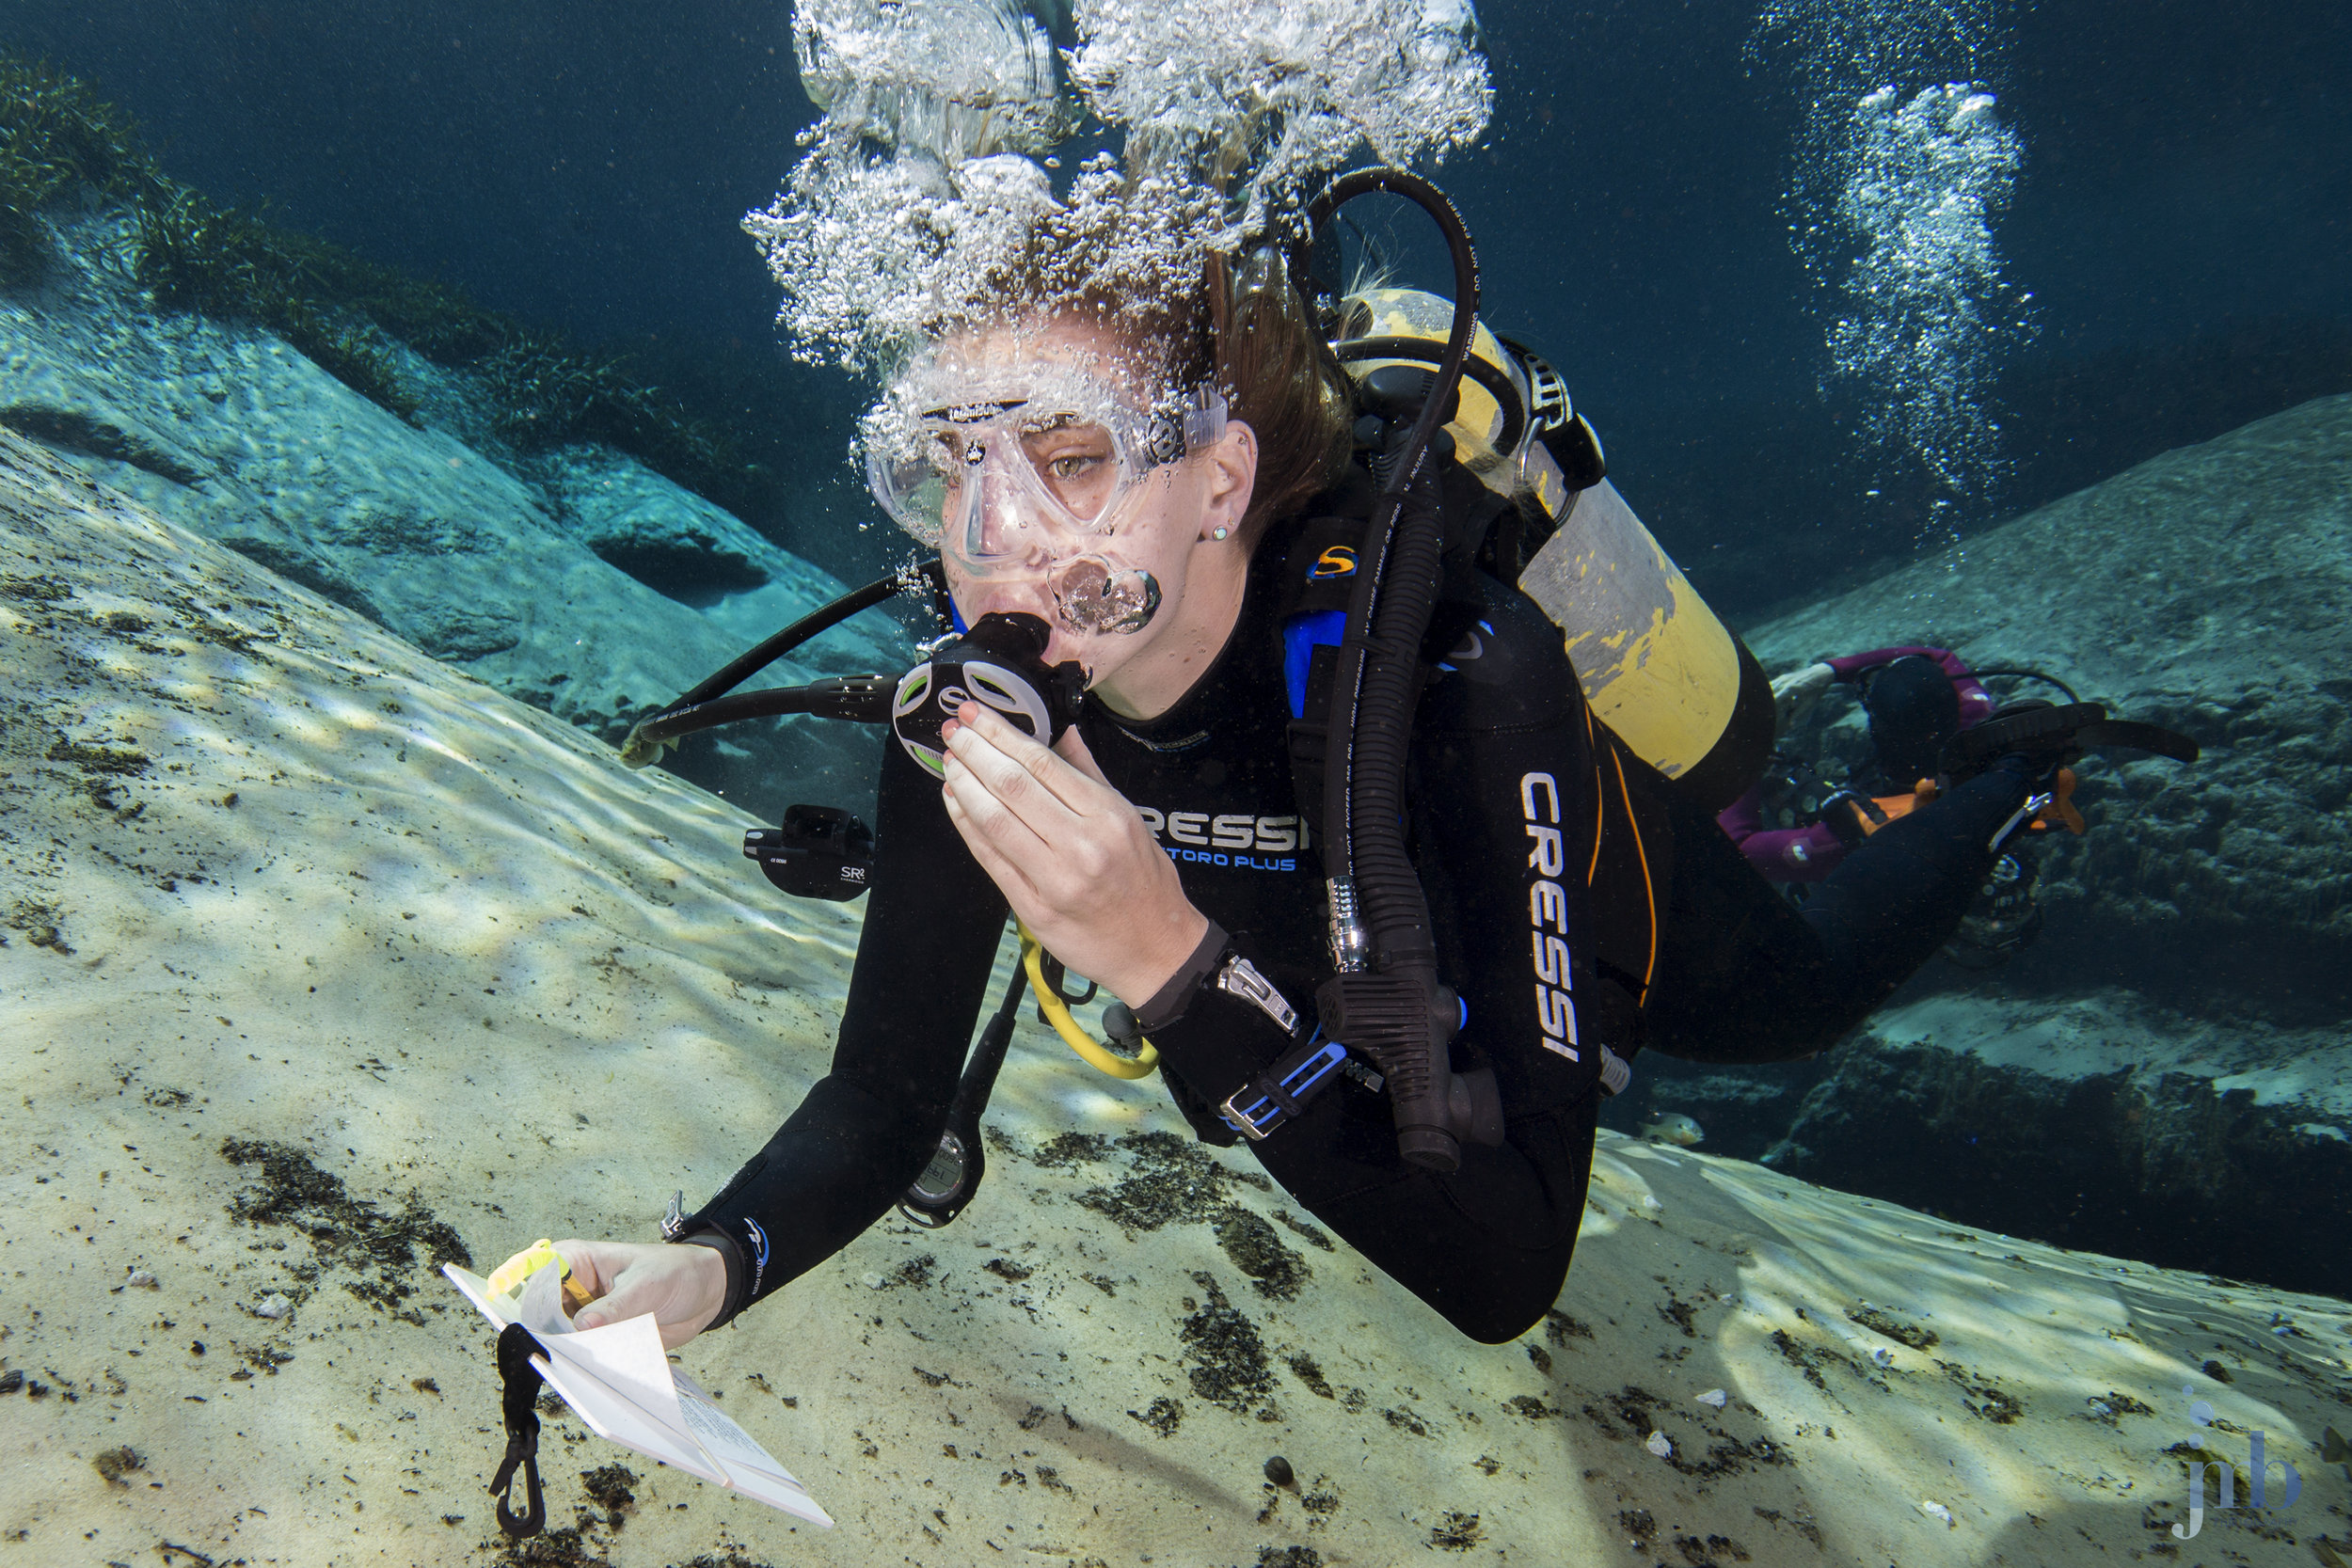 Scuba Diving Reg: Behind-the-Scenes